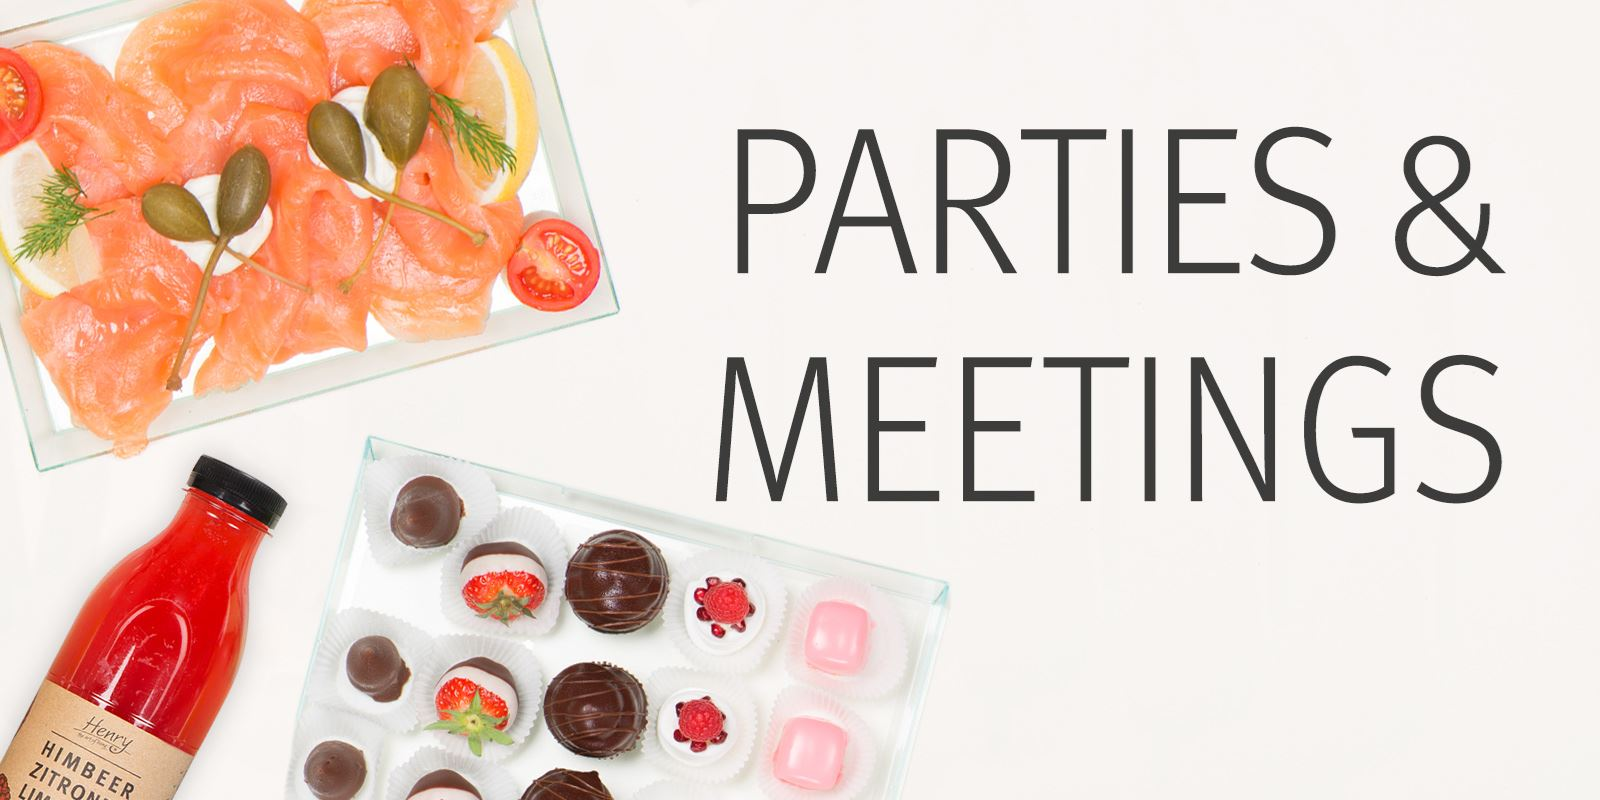 Parties & Meetings